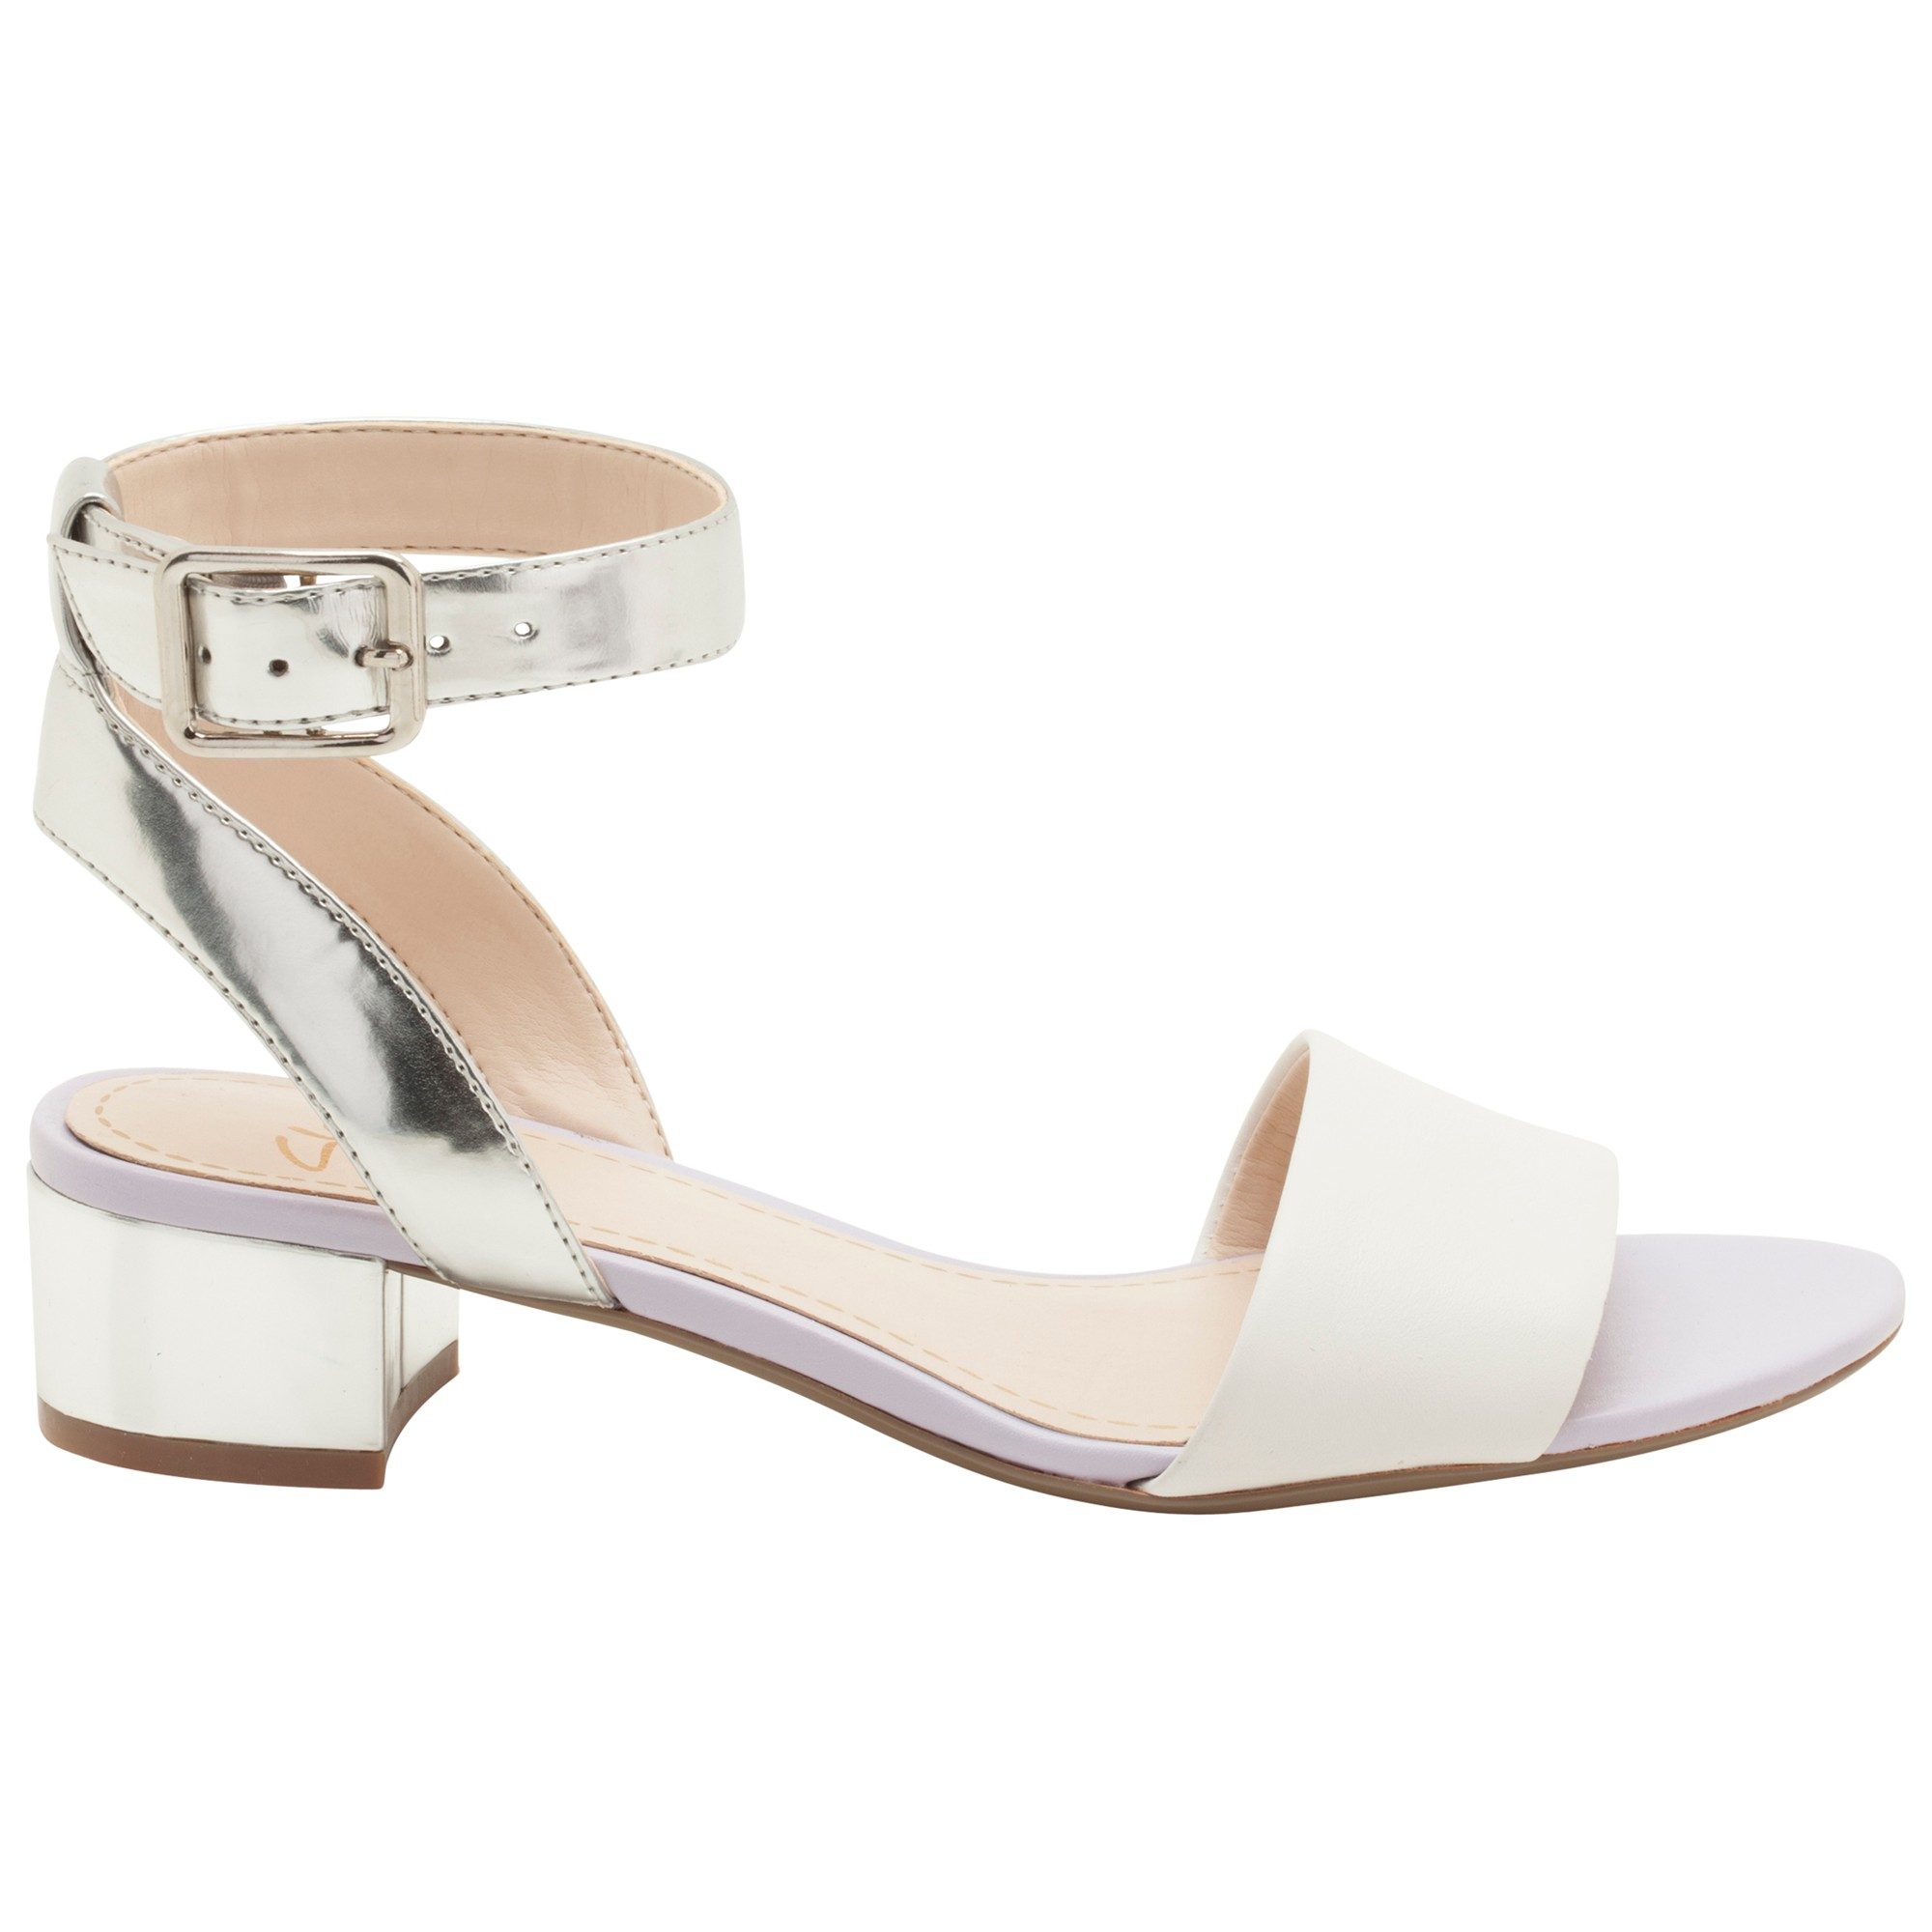 06a2281bb0cc Clarks Sharna Balcony Sandals in White - Lyst